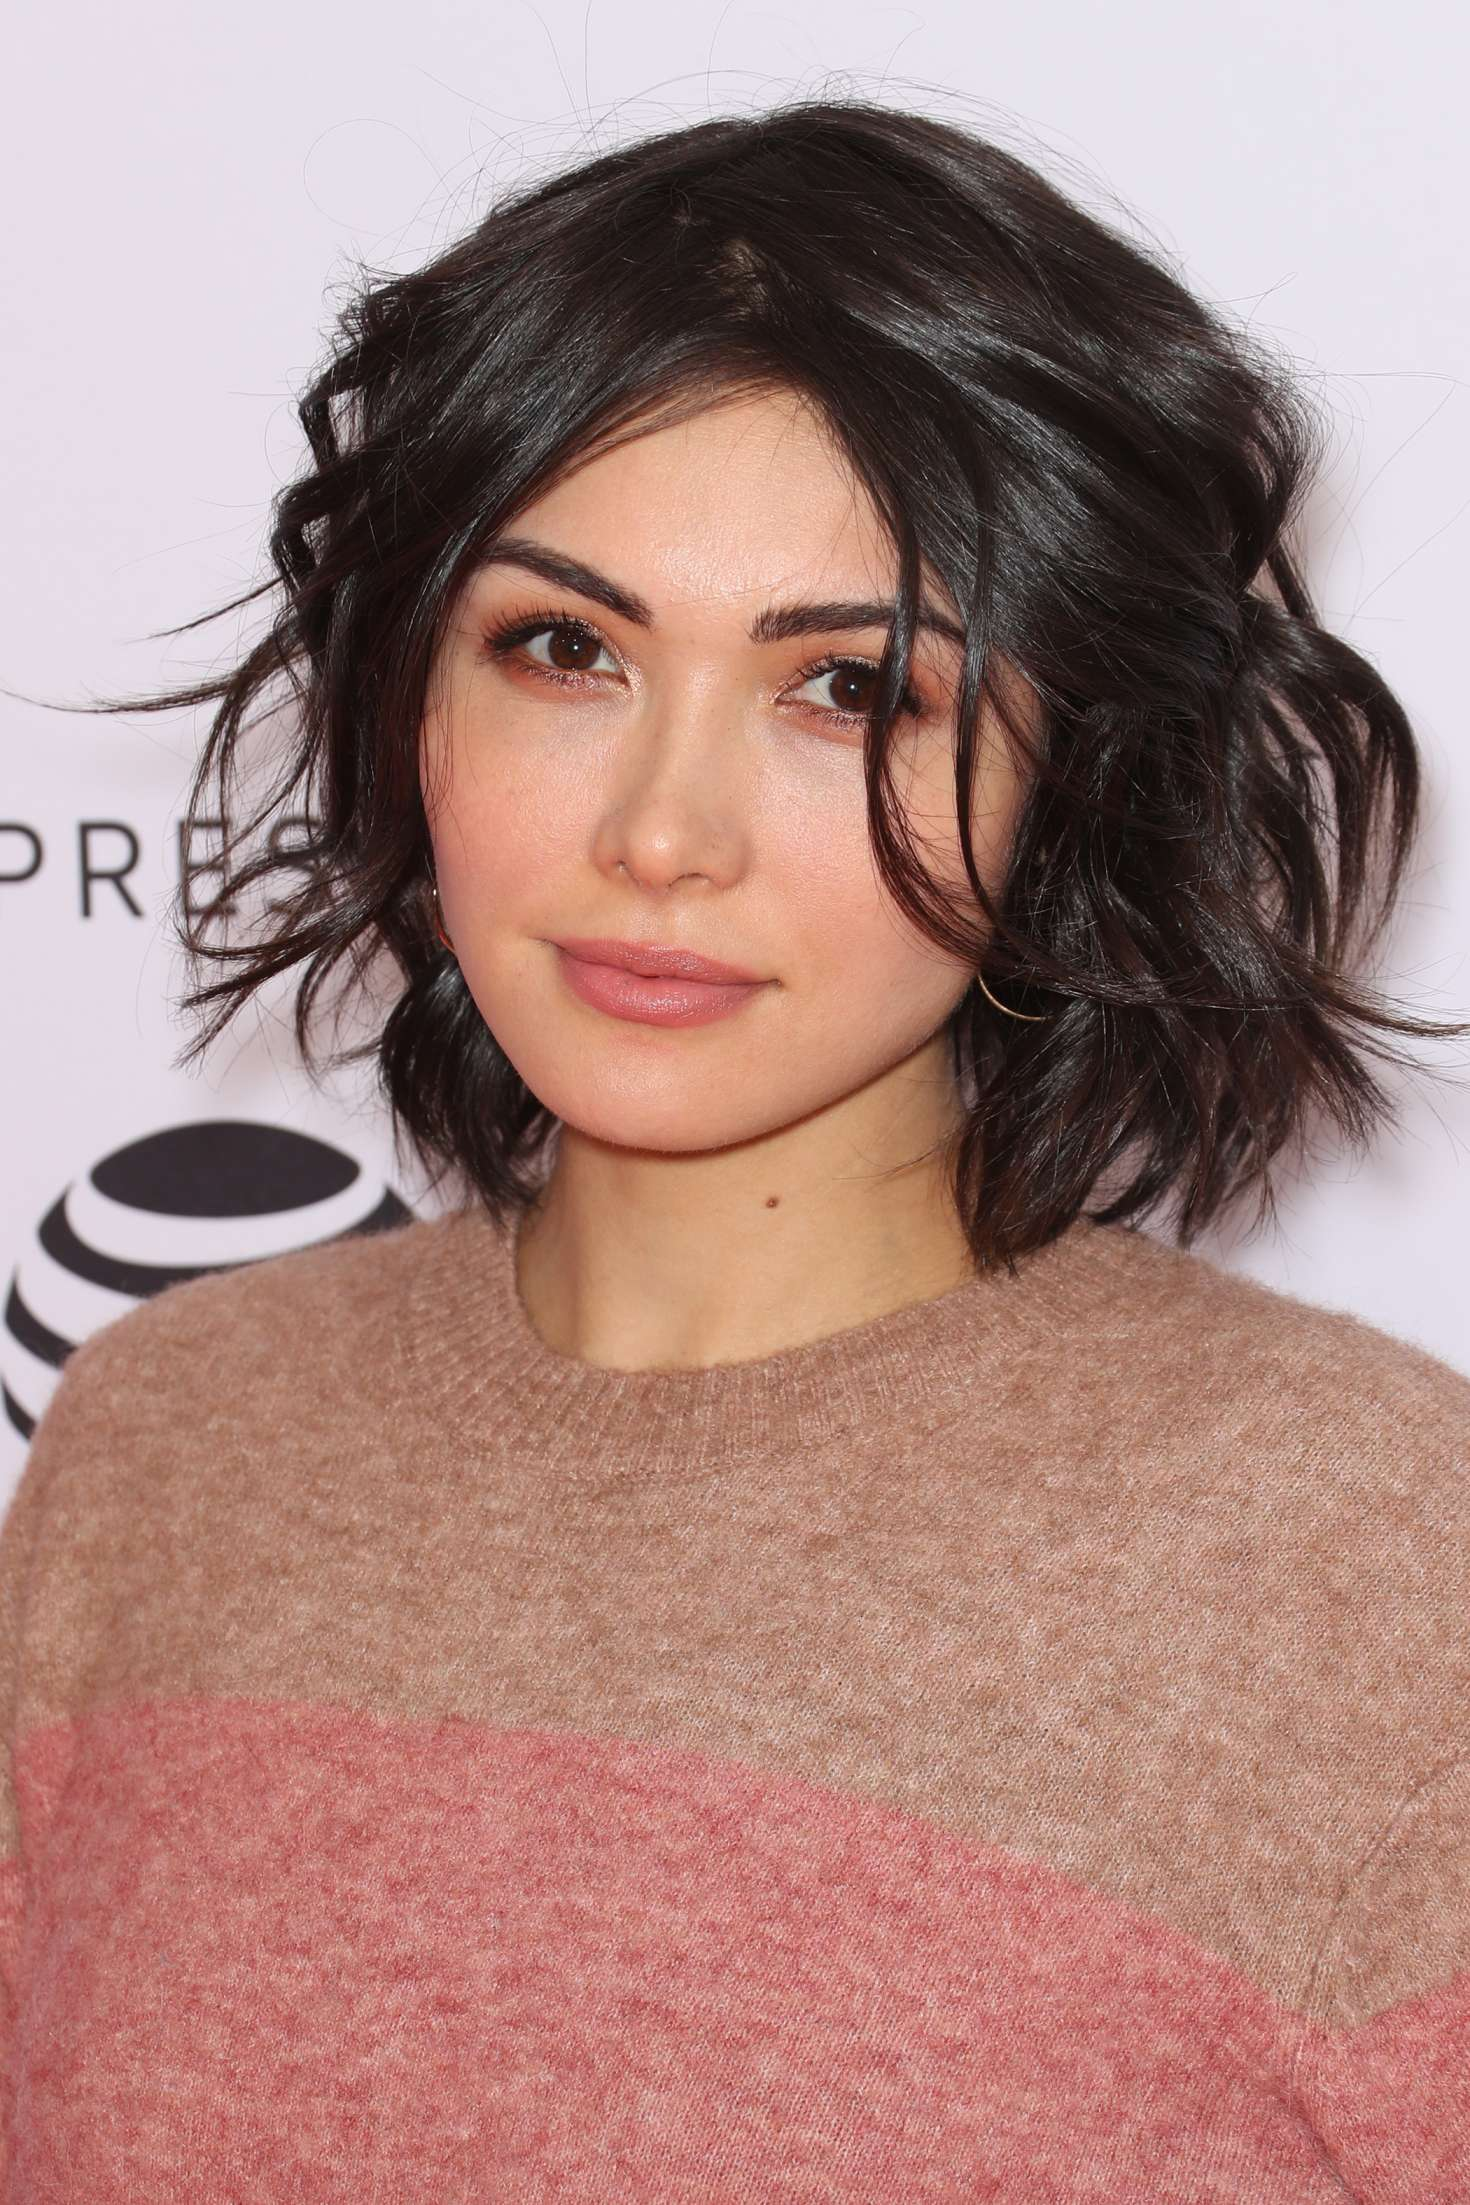 Fotos Daniella Pineda naked (39 photo), Pussy, Leaked, Instagram, butt 2006